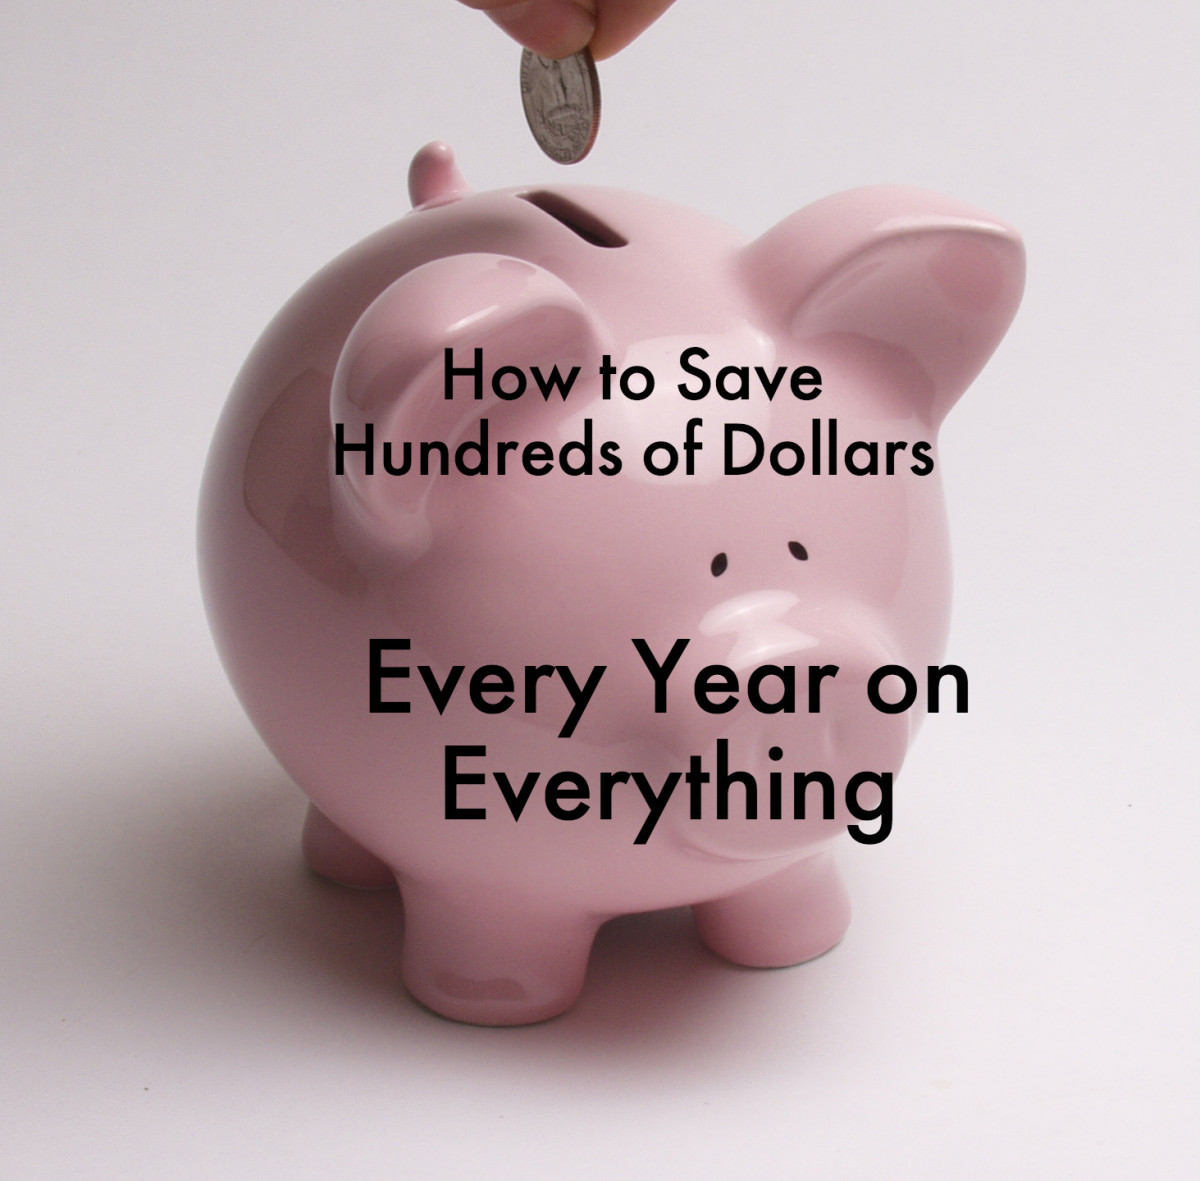 Read on for smart ways to save money on everything from dental care to car insurance.